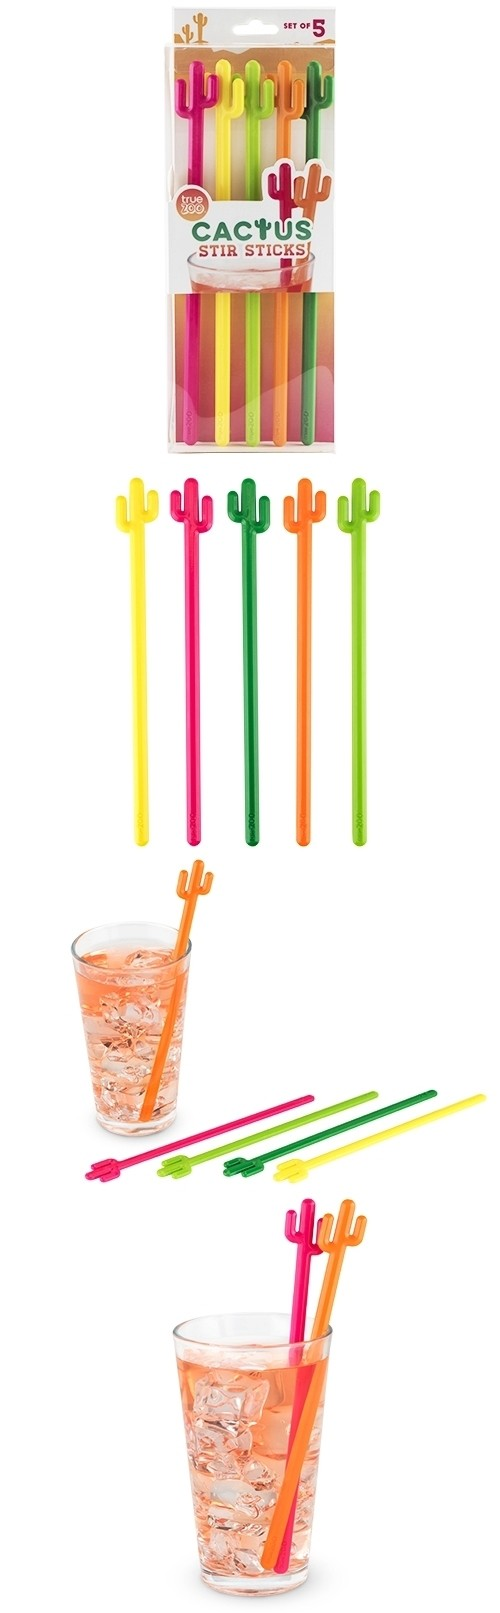 Colorful Cactus Stir Sticks by TrueZOO (Set of 5)